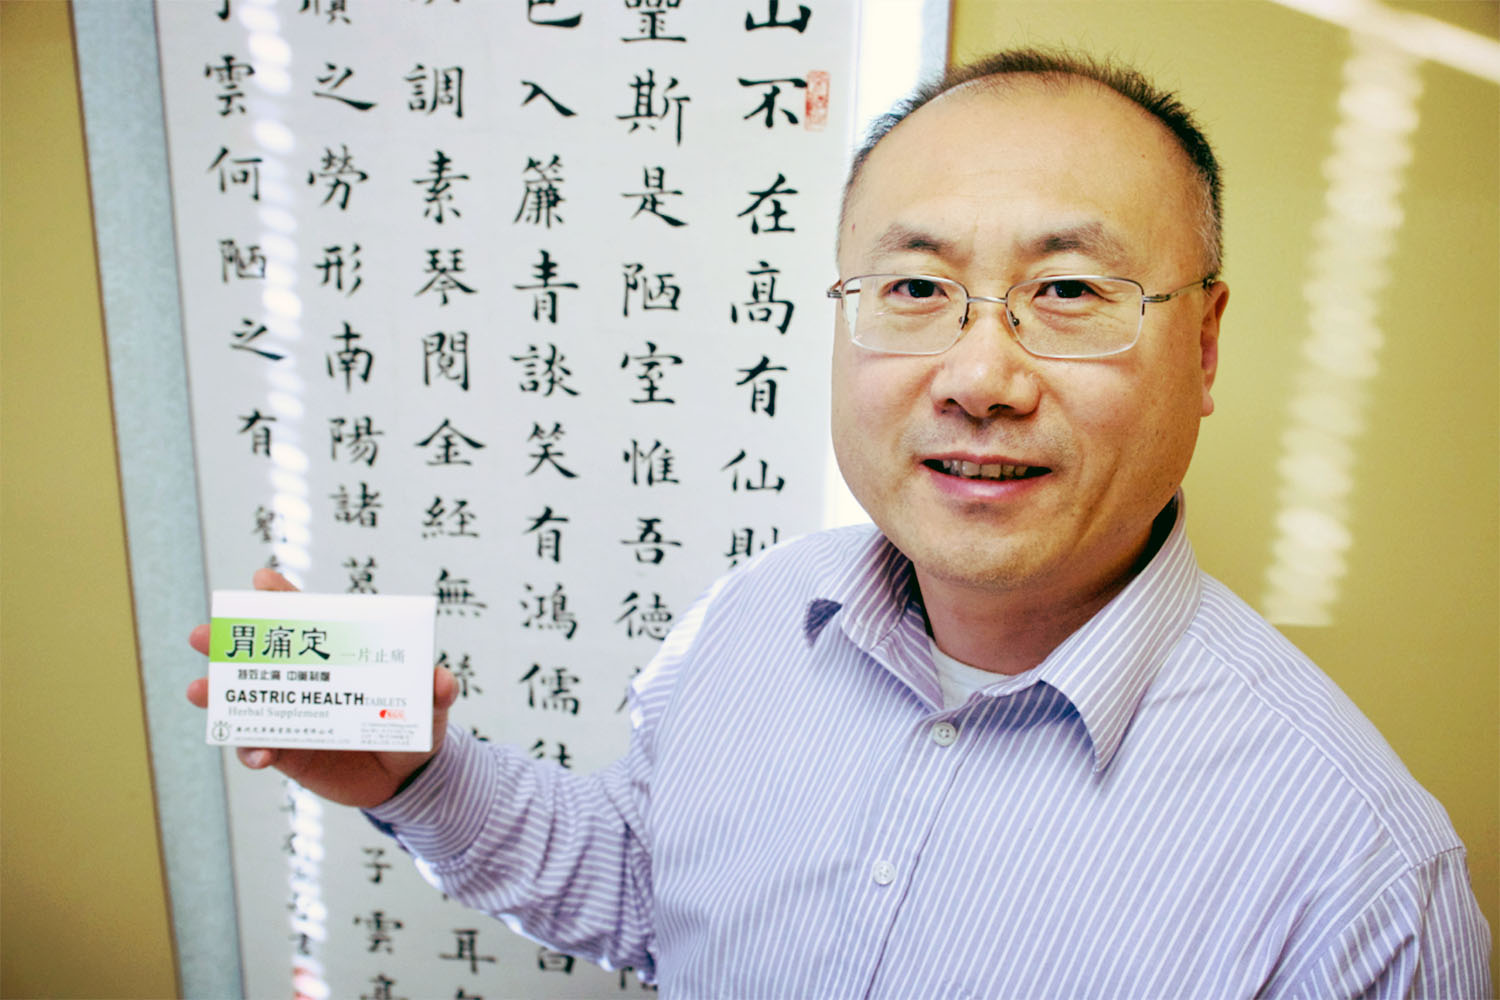 Dr. Yu with Jing River Acupuncture